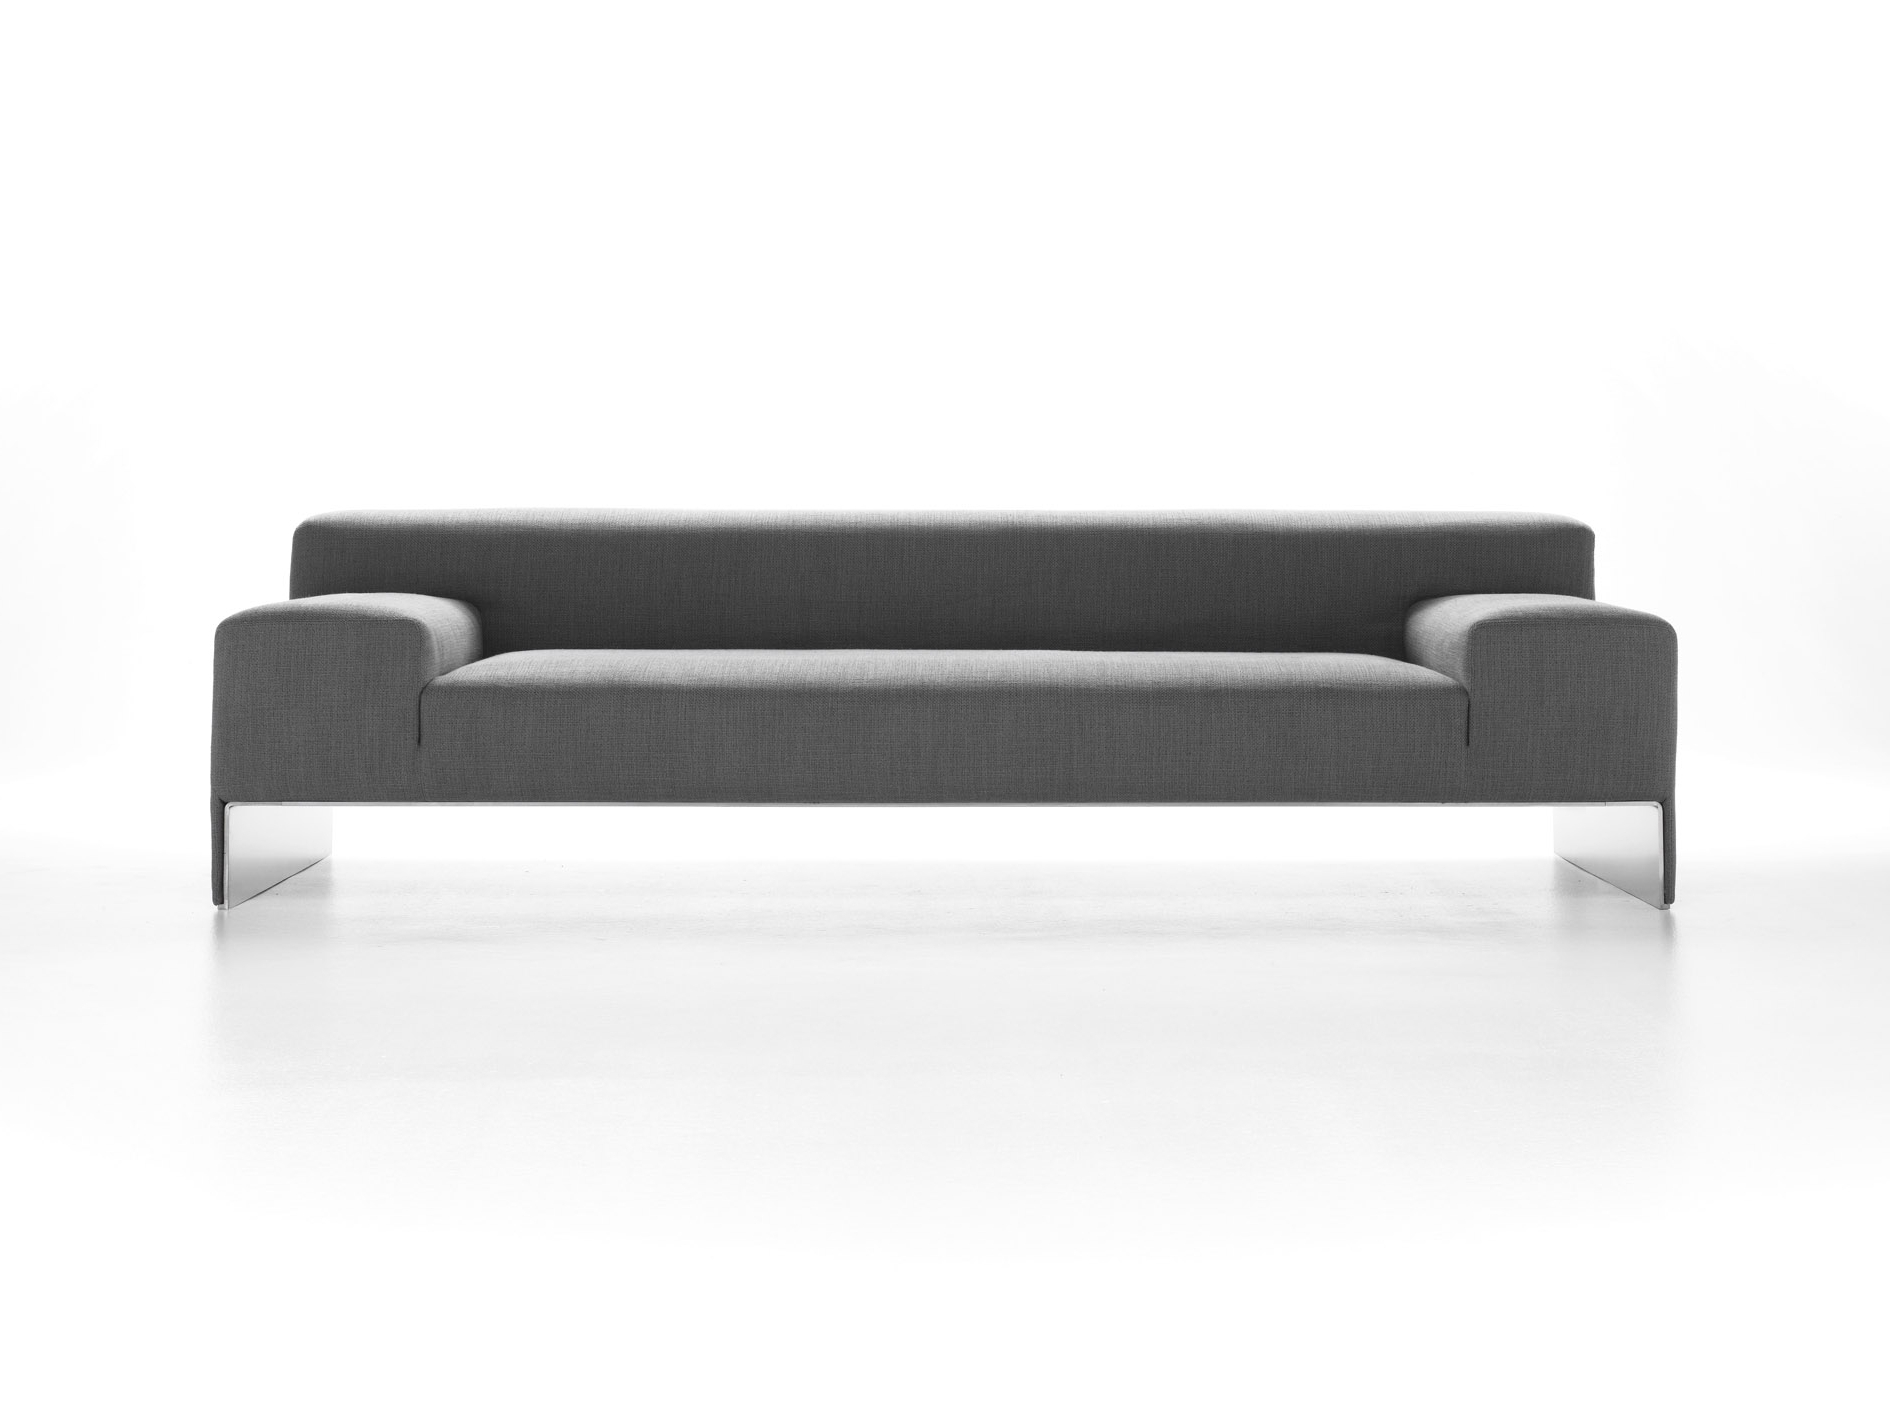 Current Minimalist Black Long Sofa With Wooden Legs And Soft Modern Skin Inside Long Modern Sofas (View 2 of 15)